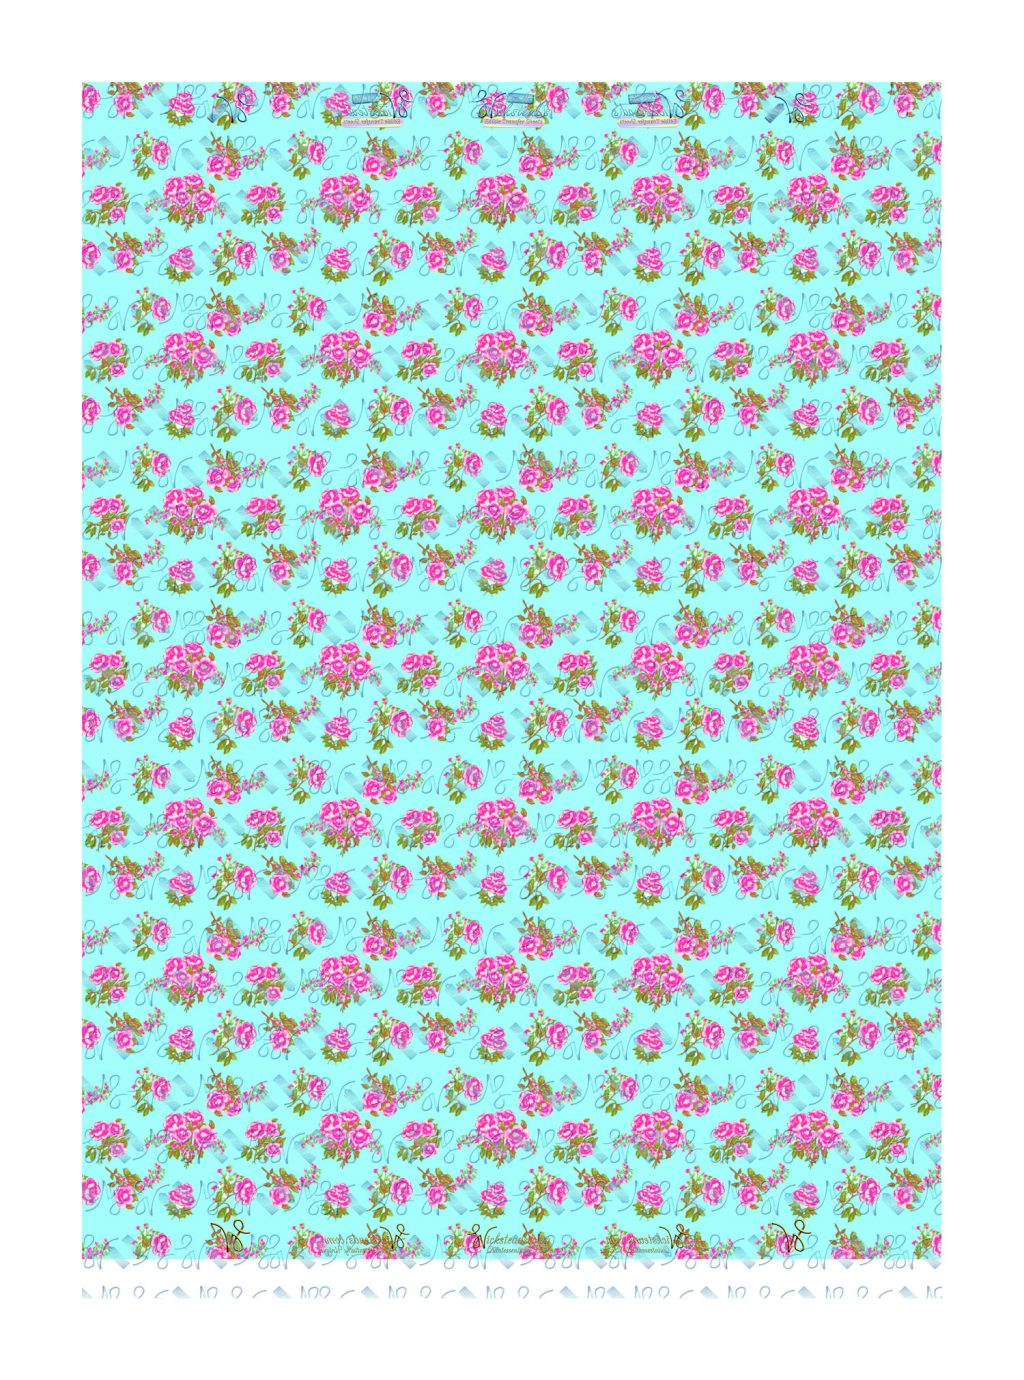 Wickstead's-Eat-Me-Edible-Meringue-Transfer-Sheets-Pink-Rose-Blue-Chintz-(2)